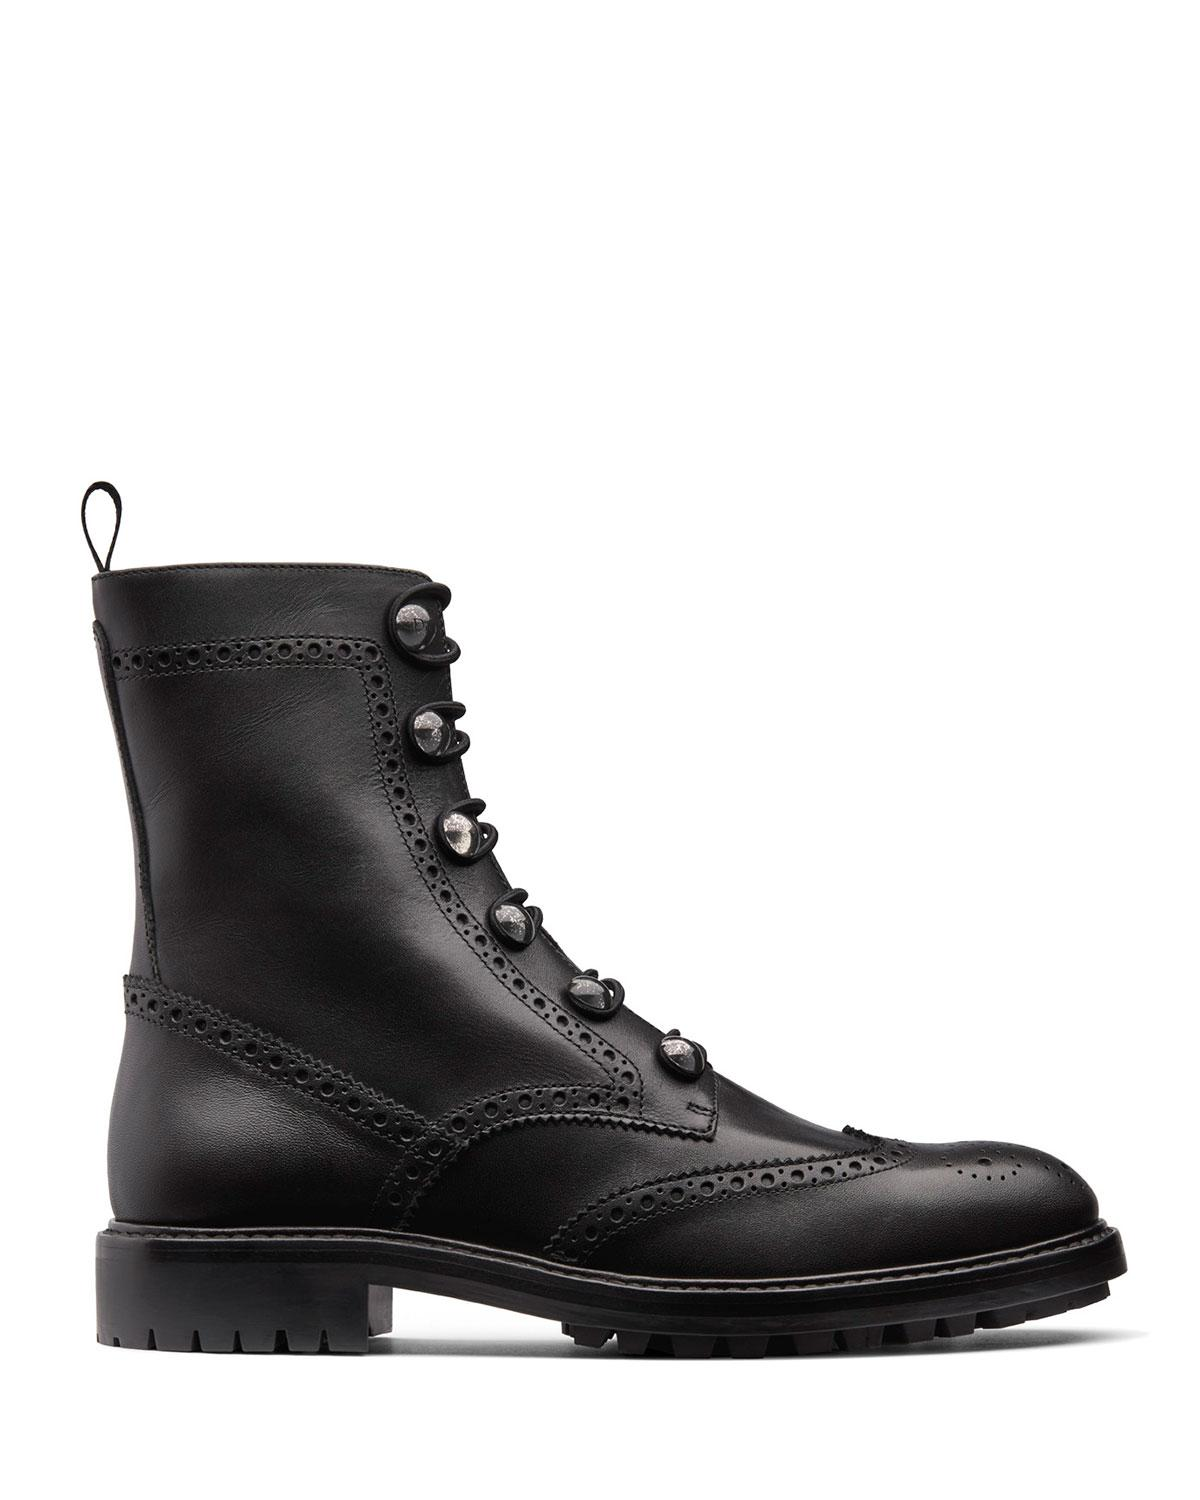 3ded209bf86 Dior Black Unit Preforated Calfskin Leather Ankle Boot